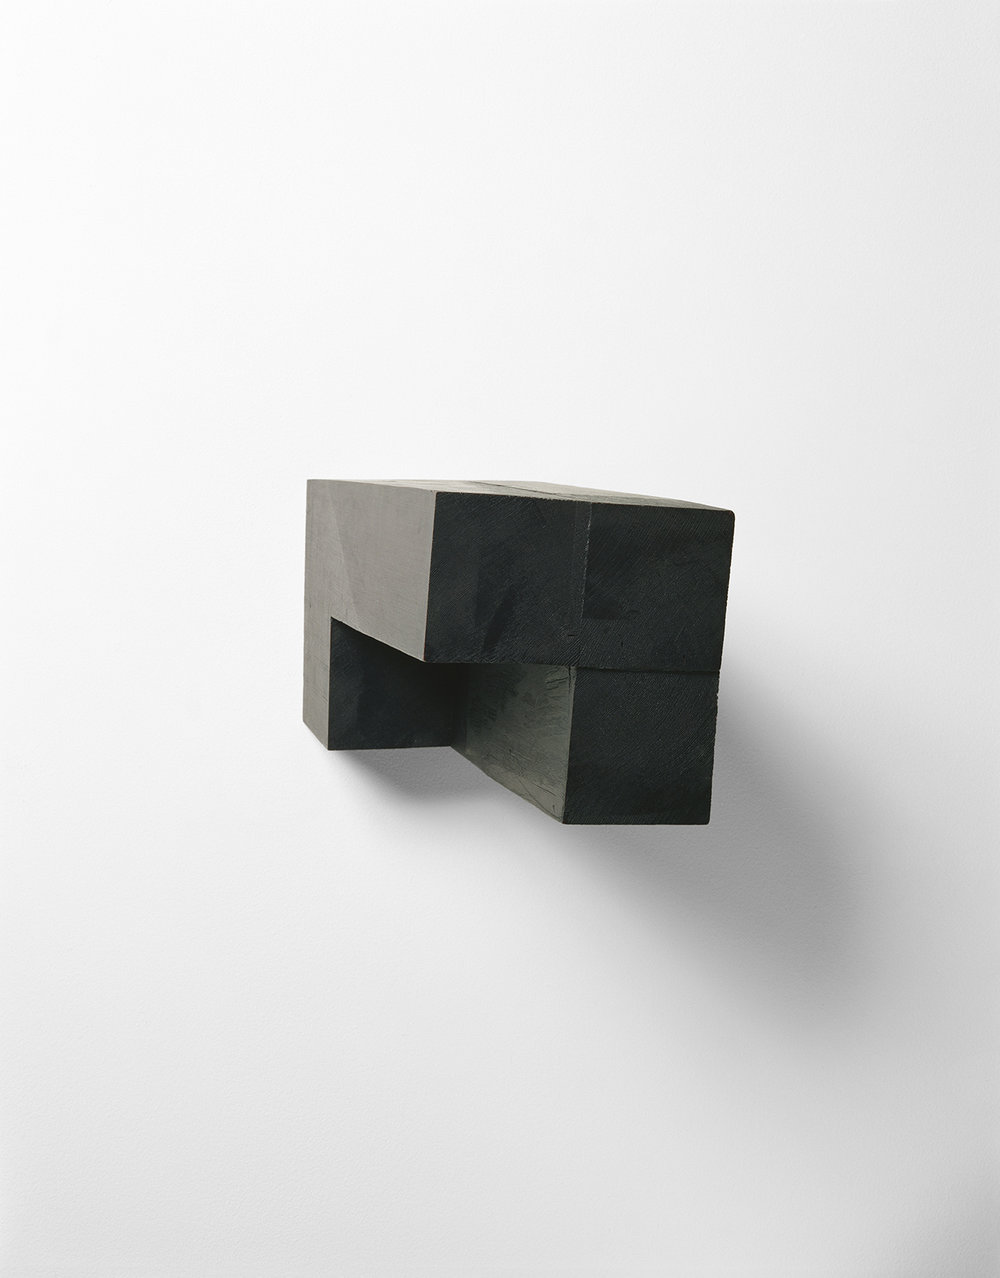 Demeure IX    (1990)   Bois polychrome, 17 x 16.5 x 28 cm, collection privée. photo : Richard-Max Tremblay